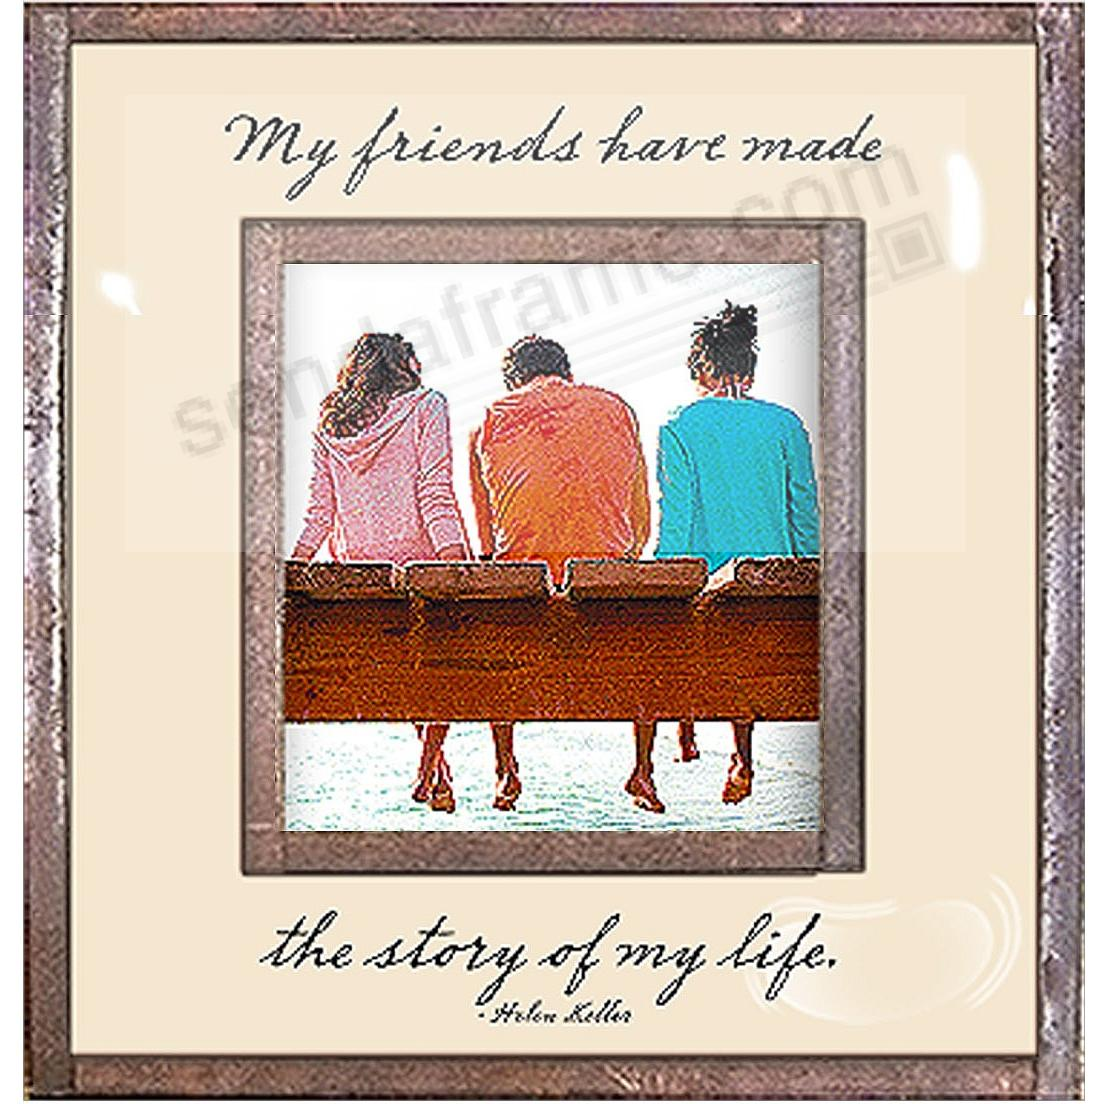 MY FRIENDS HAVE MADE THE STORY OF MY LIFE Copper + Clear Glass by Ben's Garden®